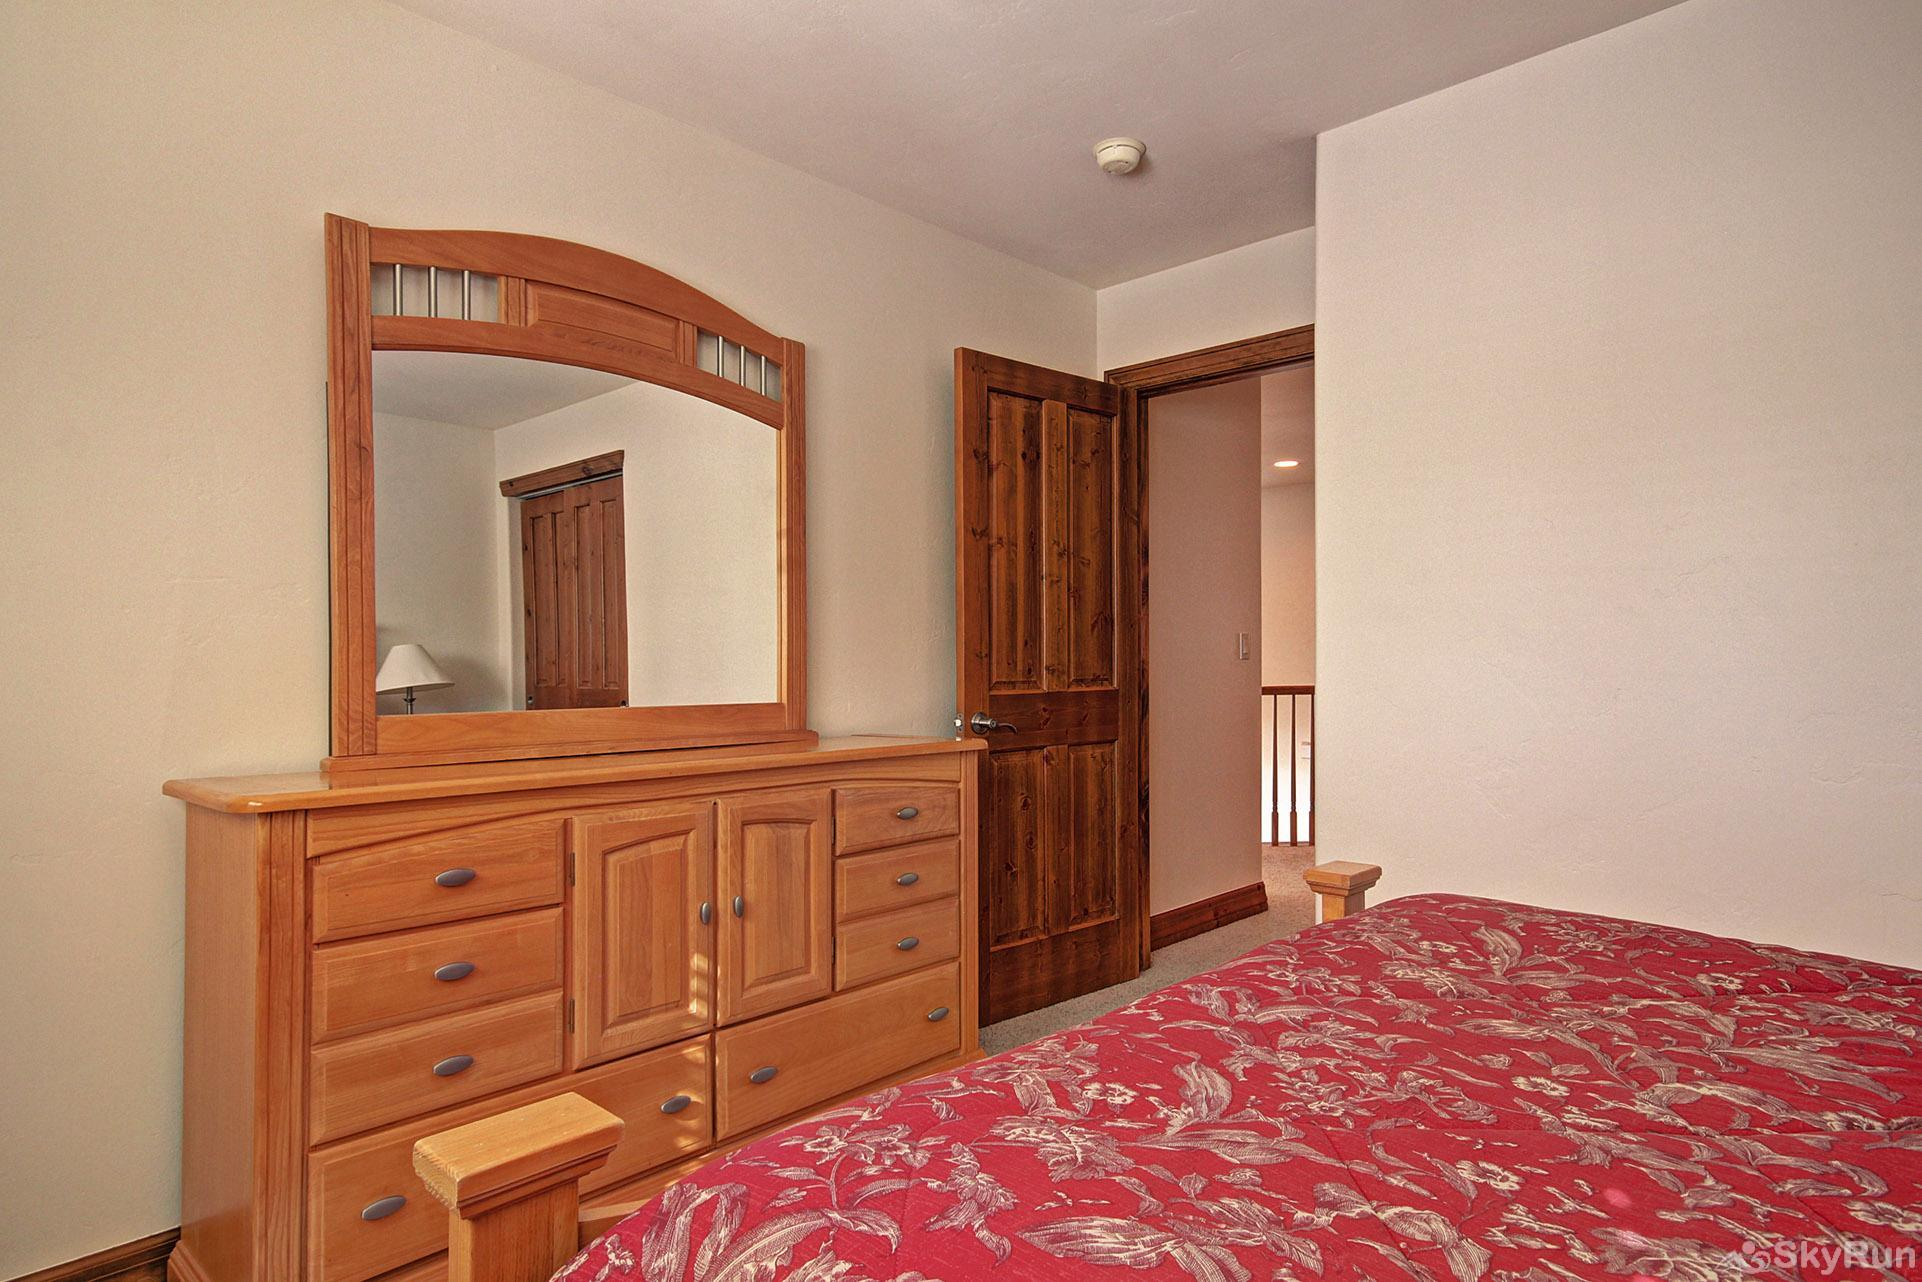 Highland Greens Pine Alternate view of third queen bedroom